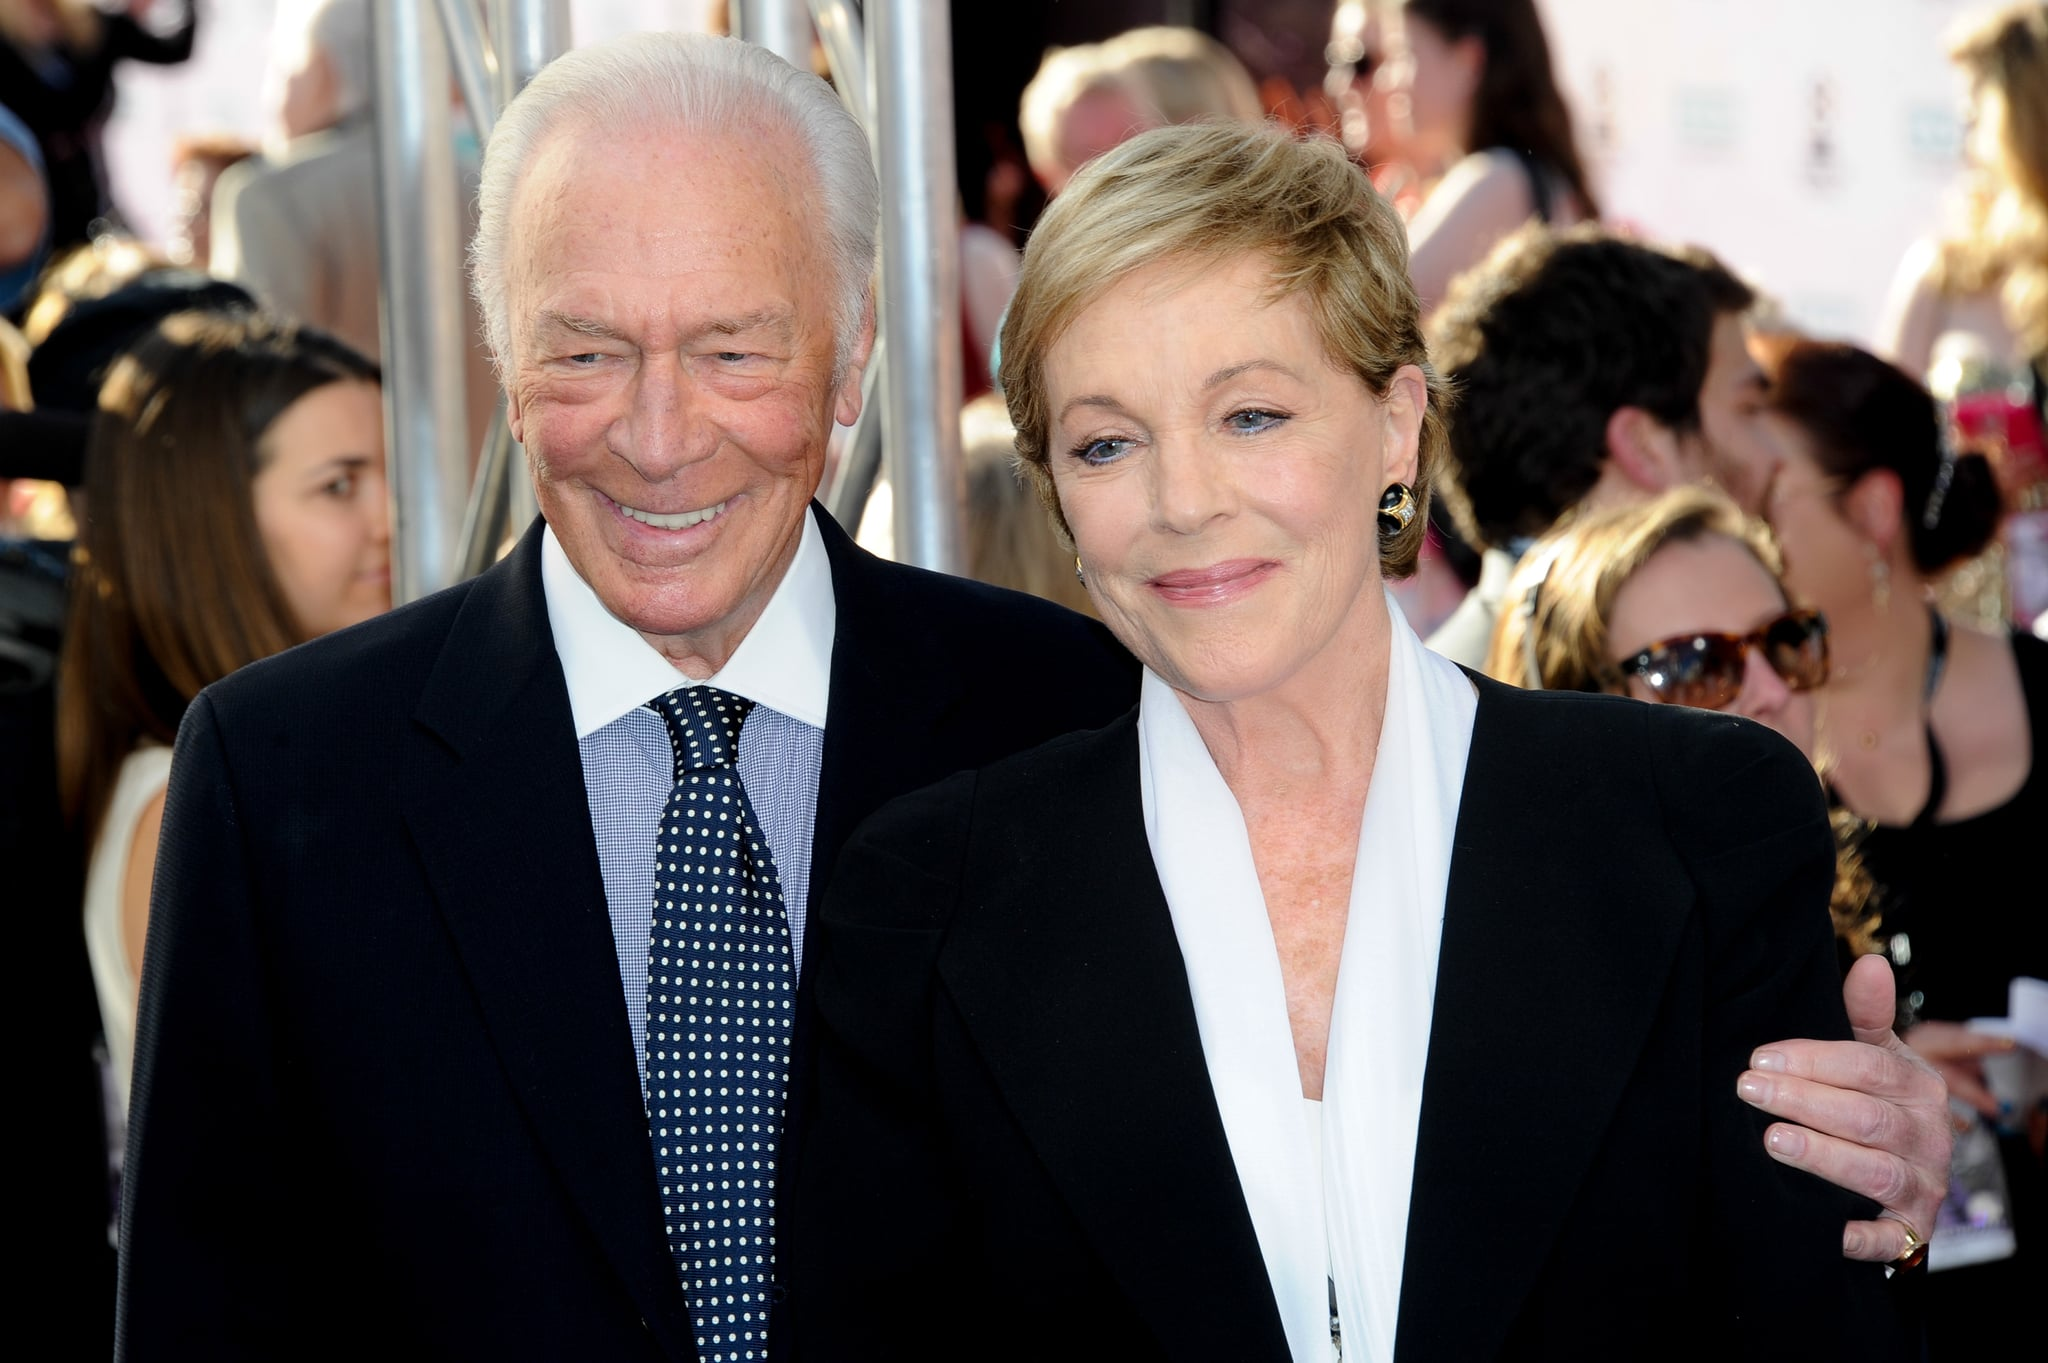 HOLLYWOOD, CA - MARCH 26:  Actor Christopher Plummer and actress Julie Andrews attend the 2015 TCM Classic Film Festival's opening night gala premiere of 50th Anniversary of